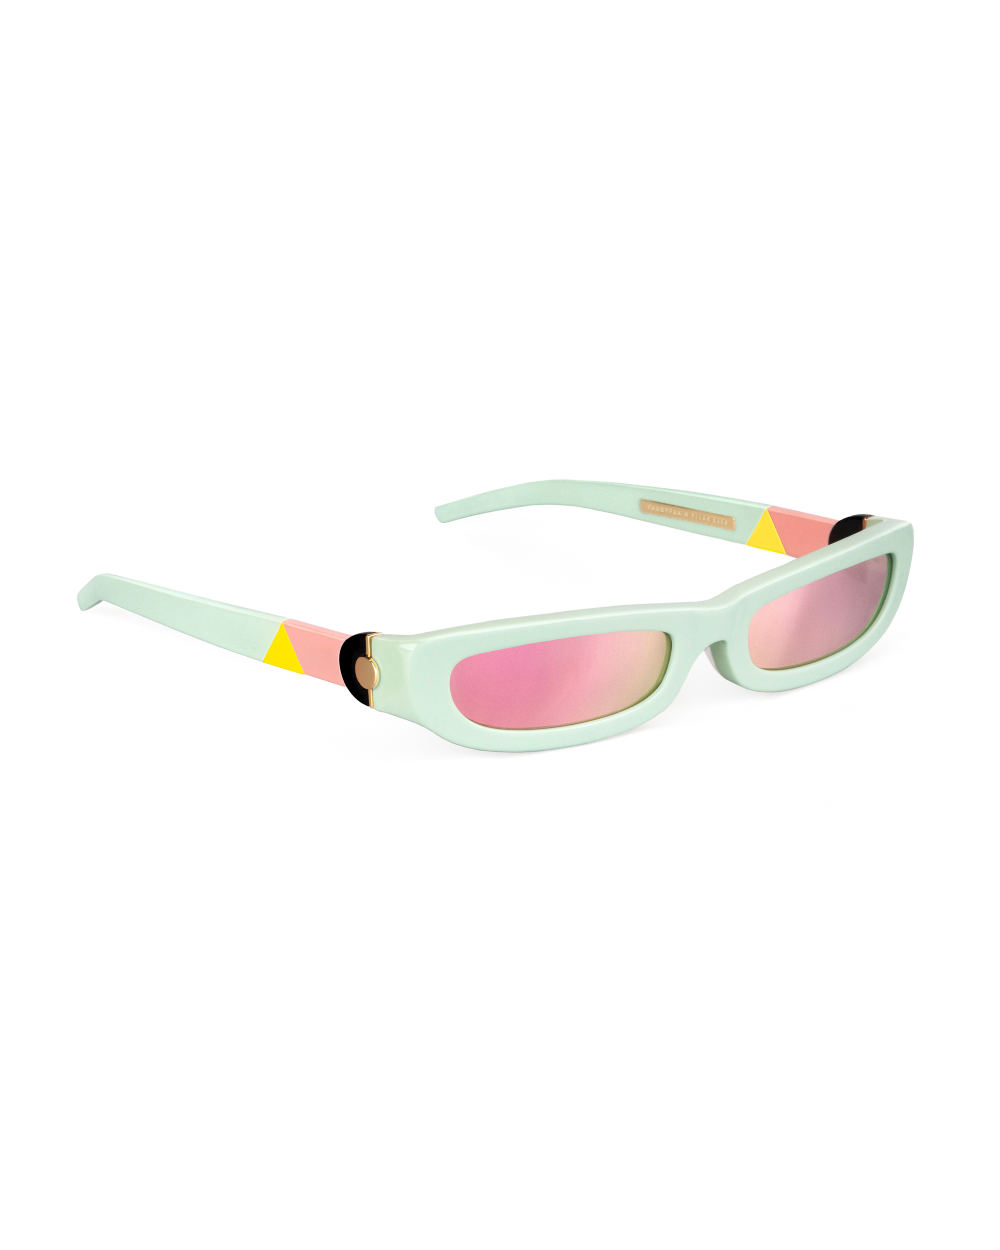 SHARP. Sunglasses. Glossy Mint & Mirrored Pink